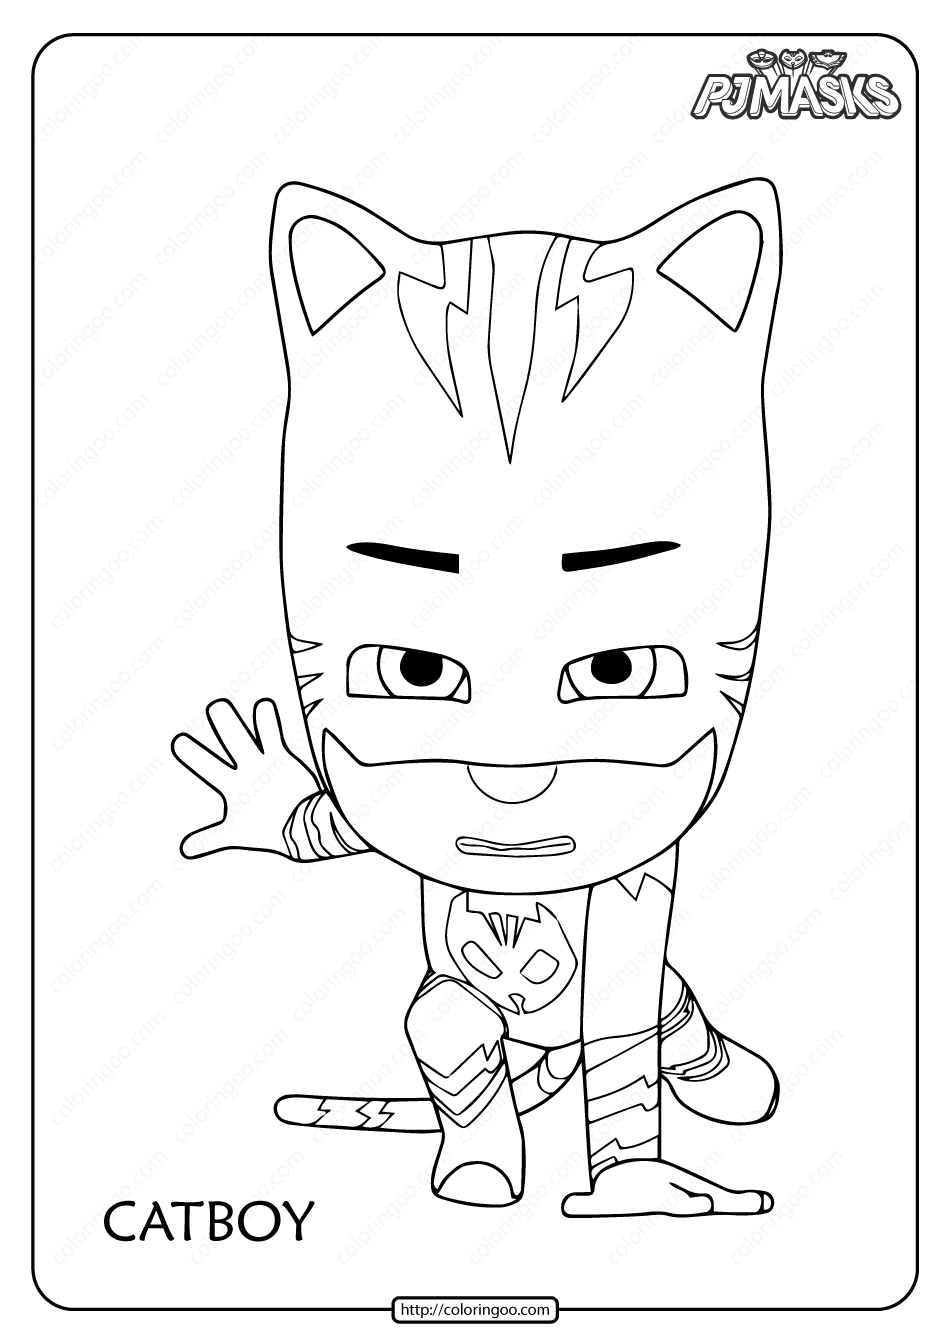 Free Printable PJ Masks Catboy Coloring Pages